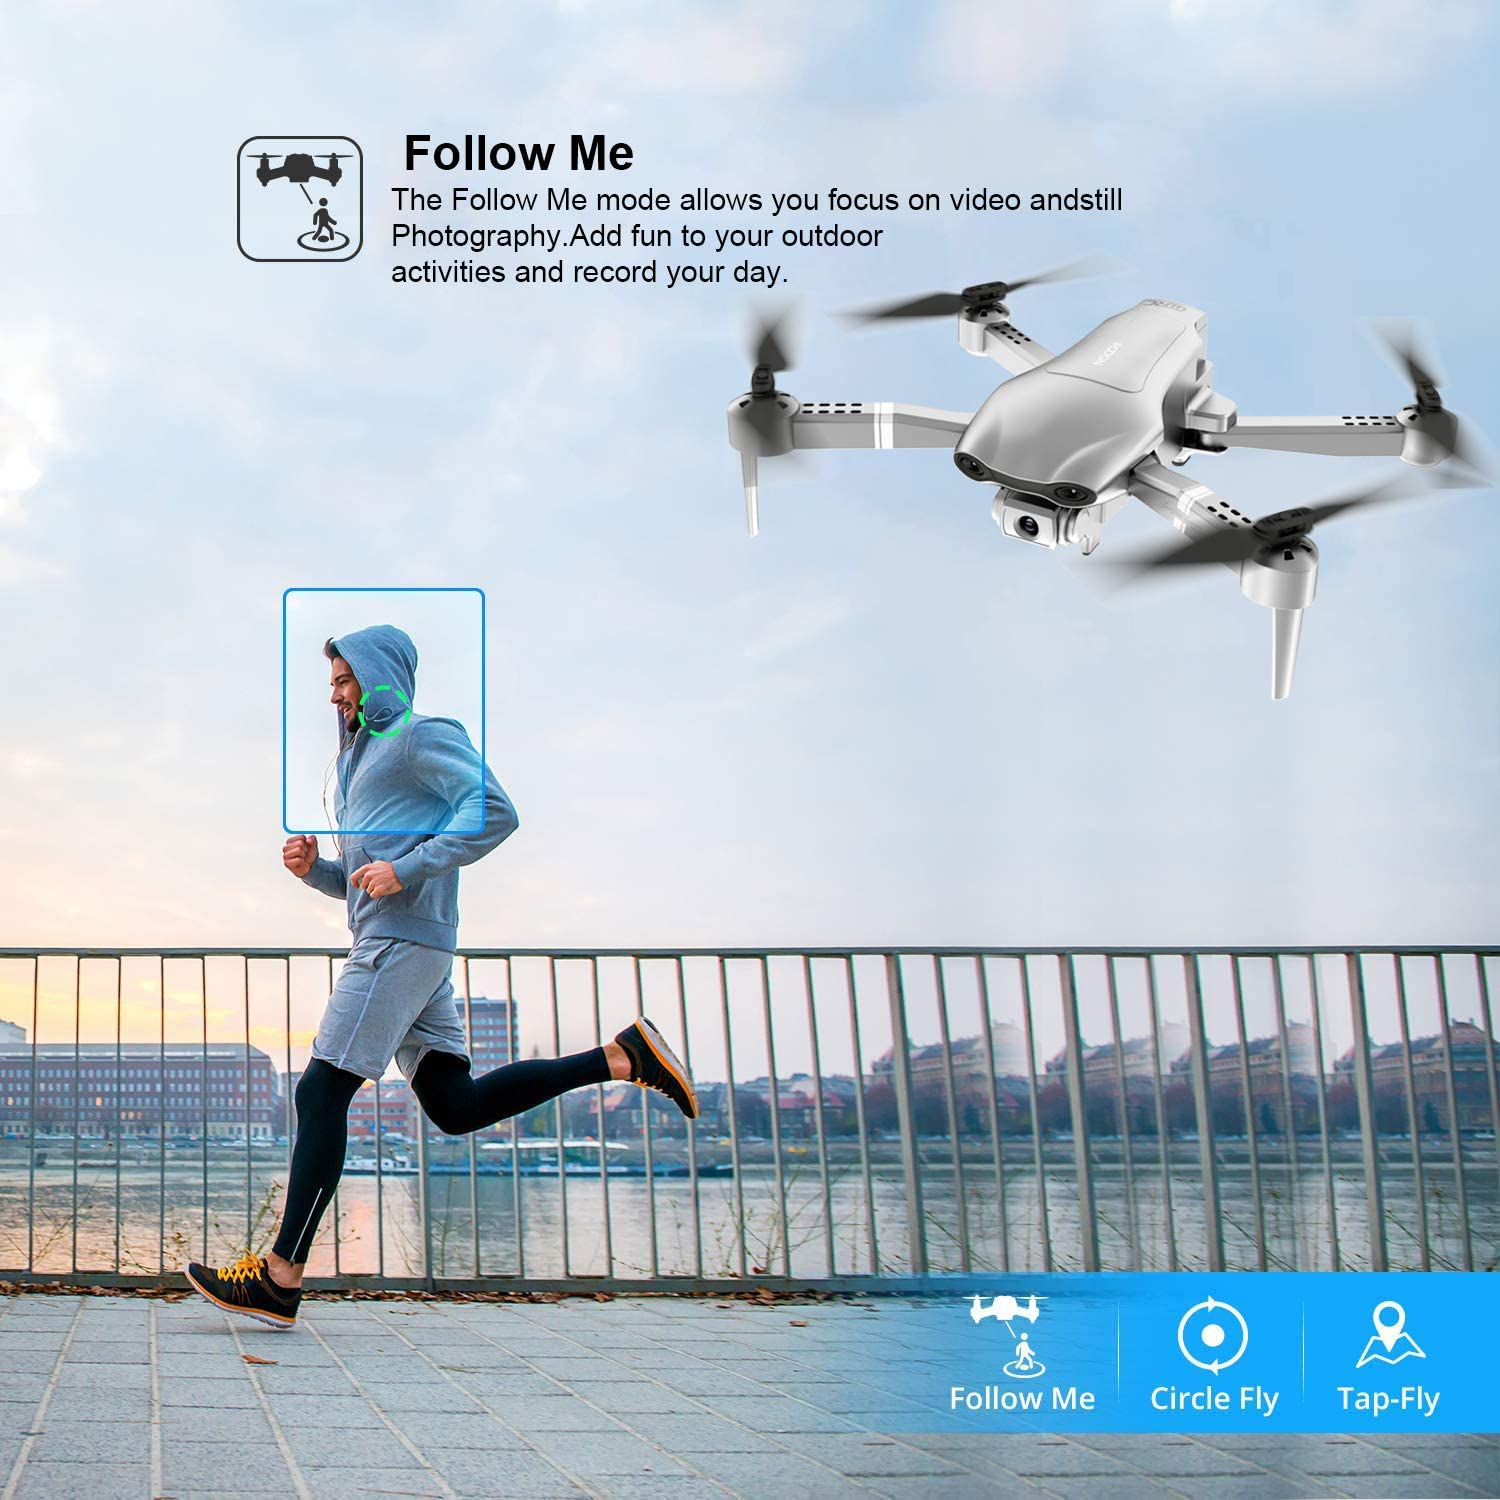 2021 NEW F3 drone GPS 1080P/4K 5G WiFi live video FPV quadrotor rc drone with HD wide-angle dual camera Toy gift enlarge